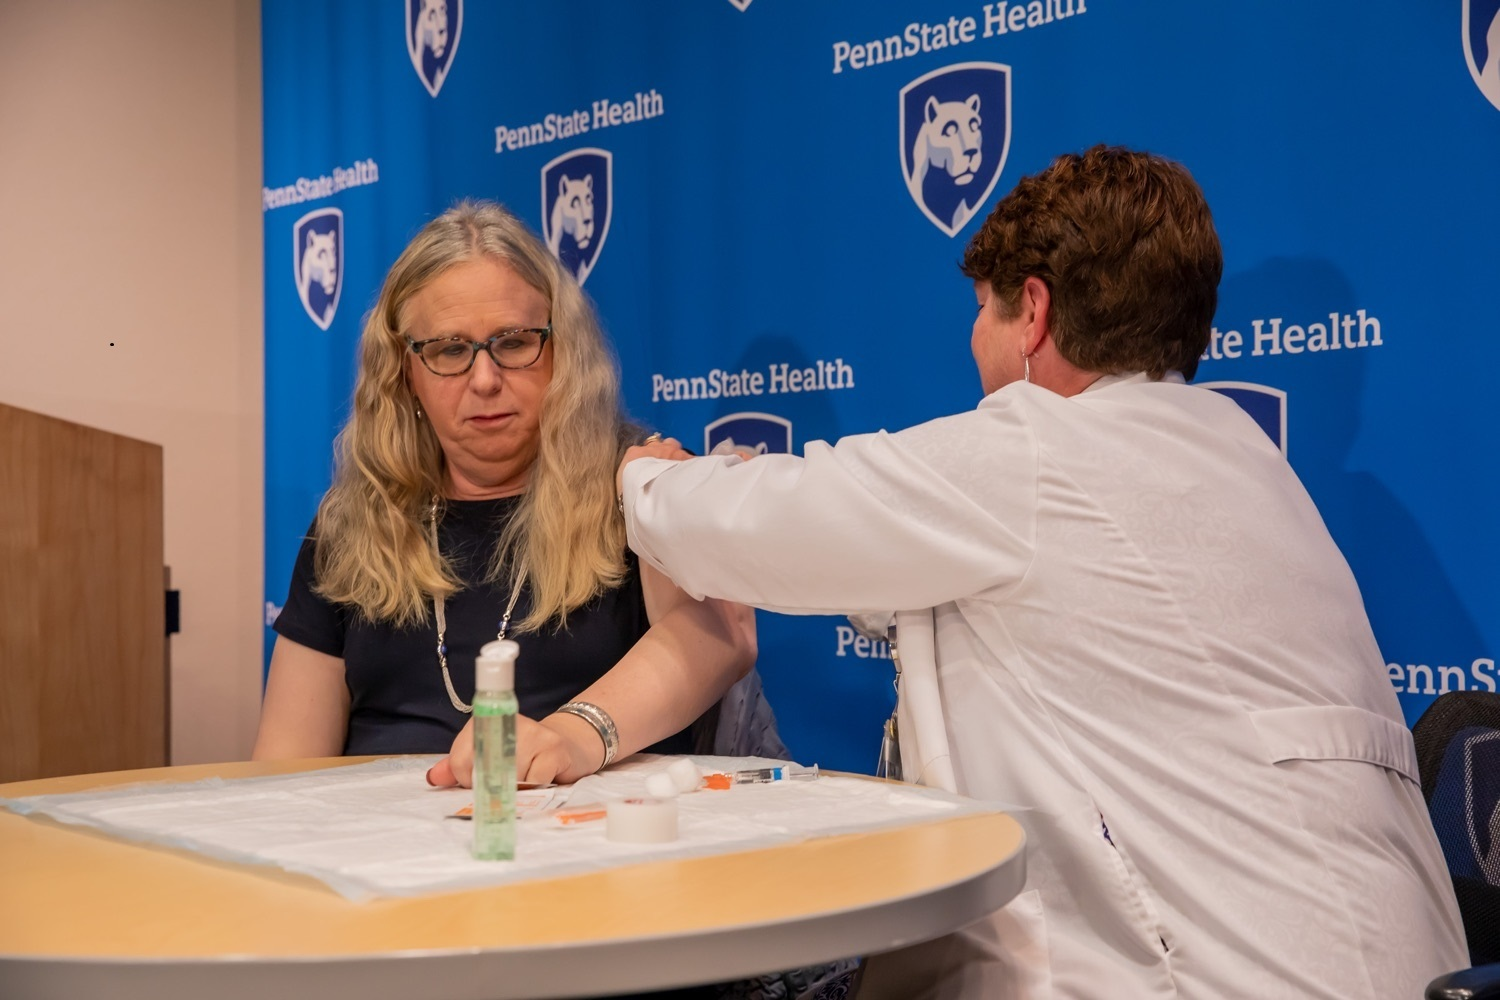 Dr. Rachel Levine, left, sits at a table with Lori Bechtel, nurse manager for Employee Health and Employee Safety as Bechtel gives her a flu shot. Levine has long, wavy hair and is wearing glasses and a dress. Bechtel has short hair and is wearing a white lab coat. Hand sanitizer and a syringe are on the table. Behind them is a banner with the Penn State Health logo on it and a podium.